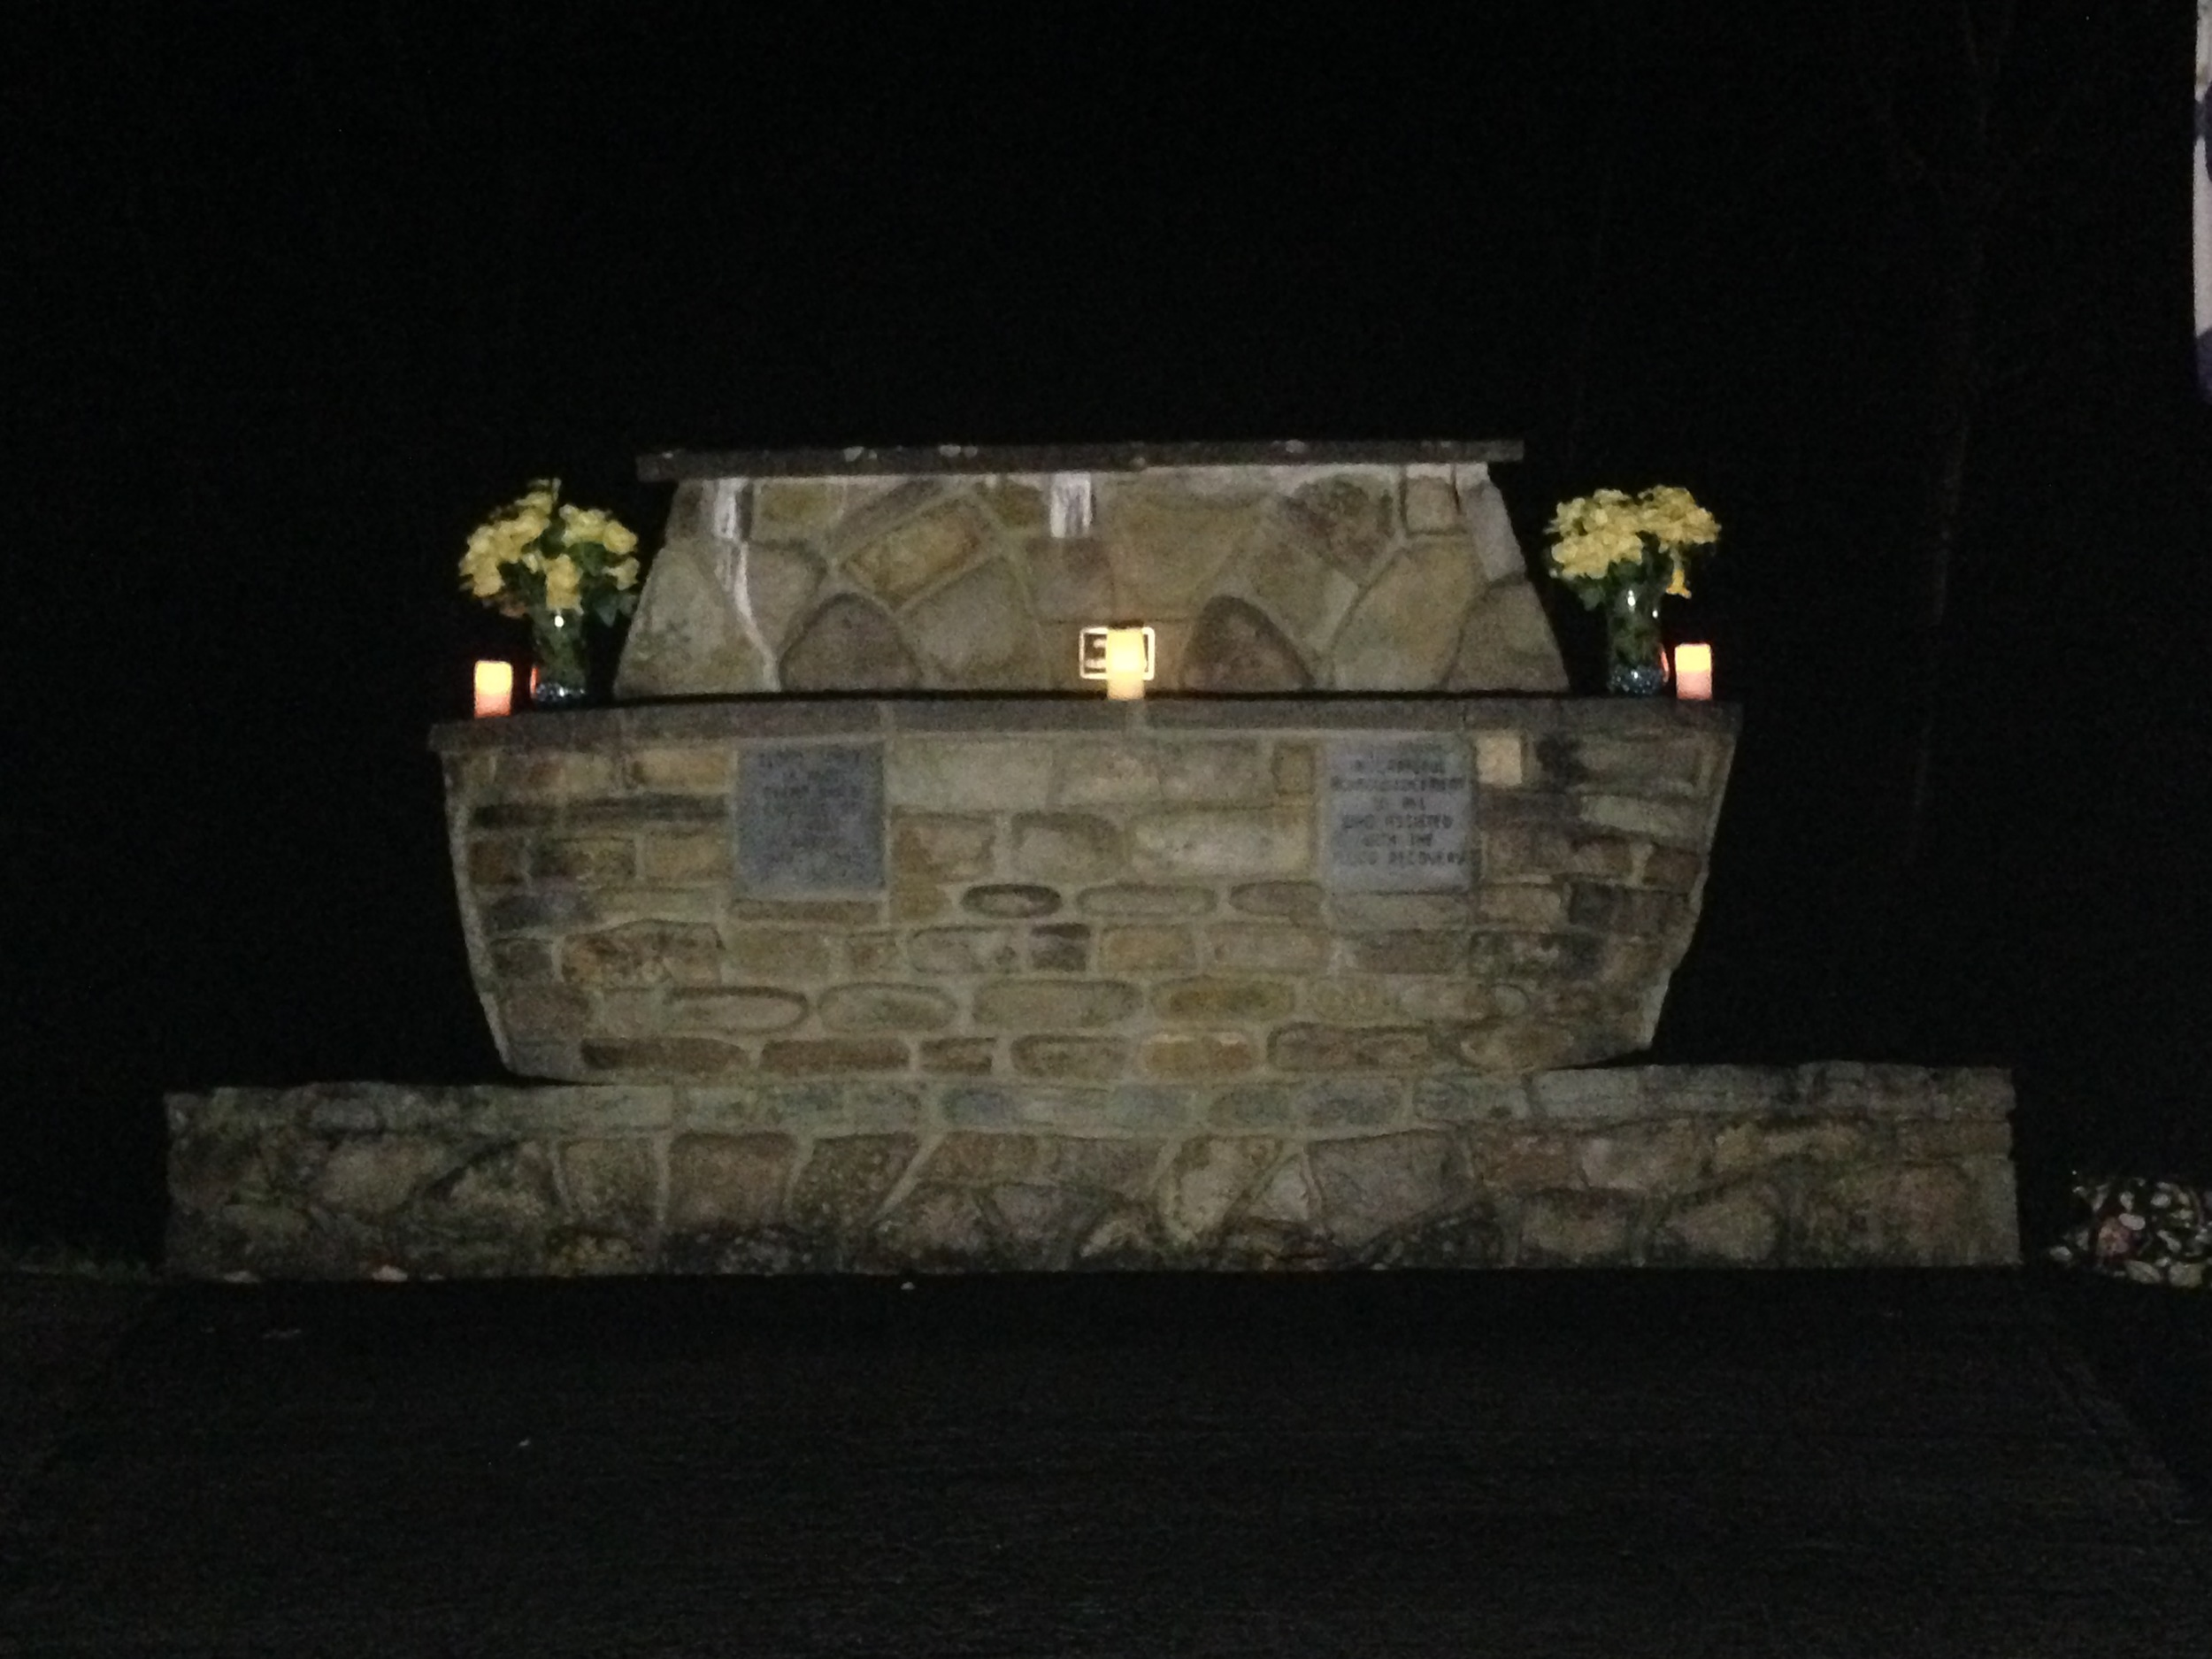 Parsons flood memorial decorated with yellow roses of hope.  November 5, 2015.